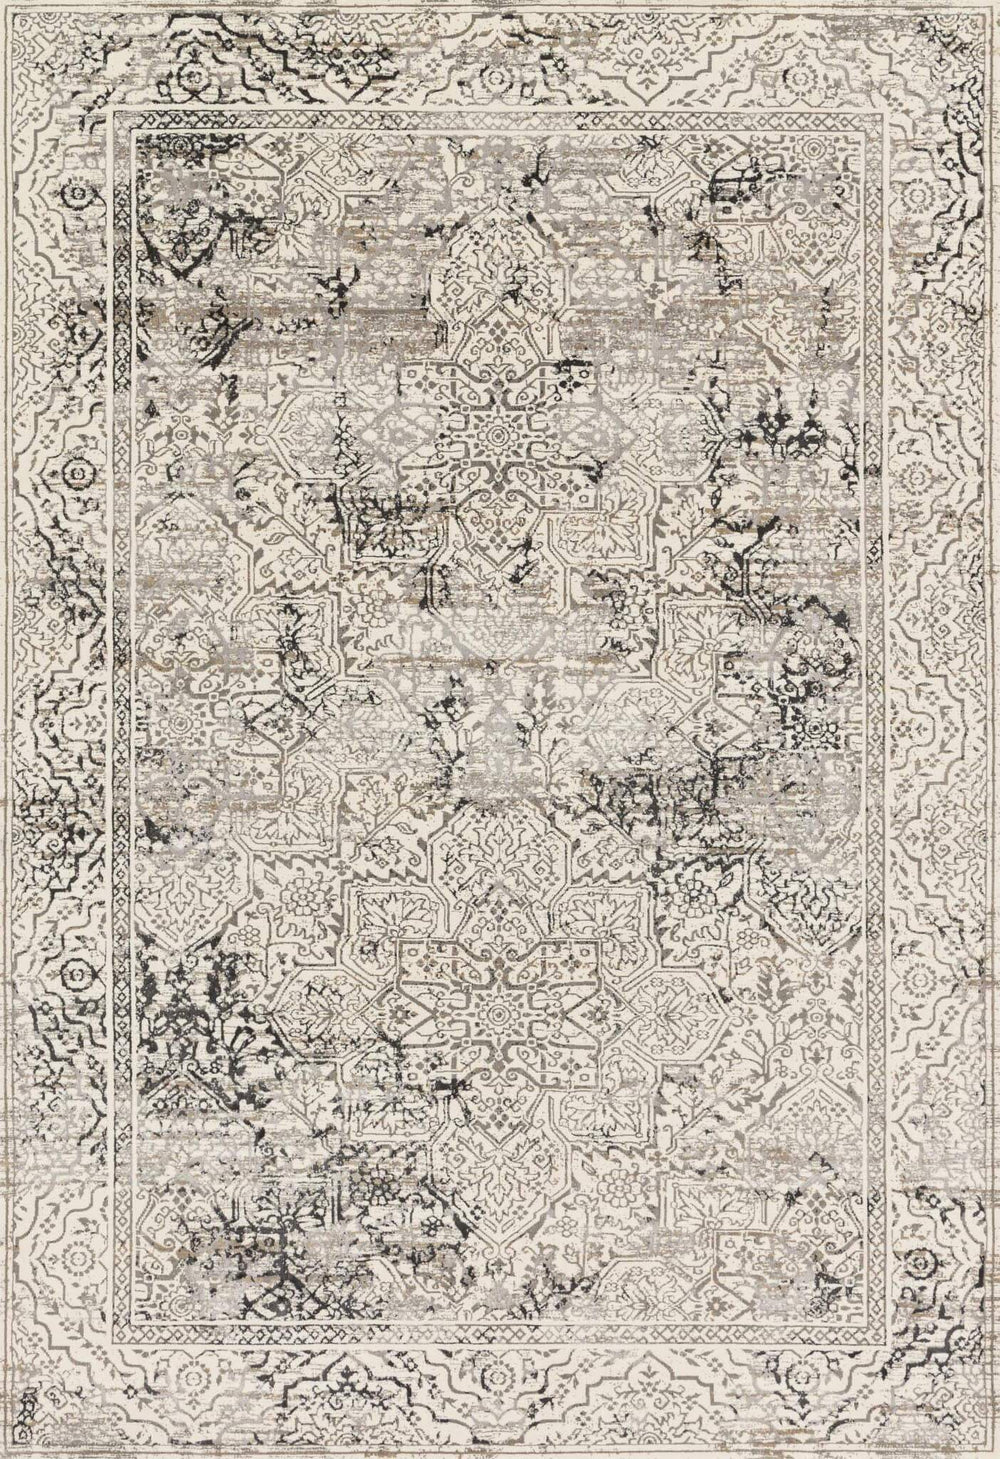 Loloi Rug Kingston KT-06 Ivory/Grey - Accessories - Rugs - Loloi Rugs